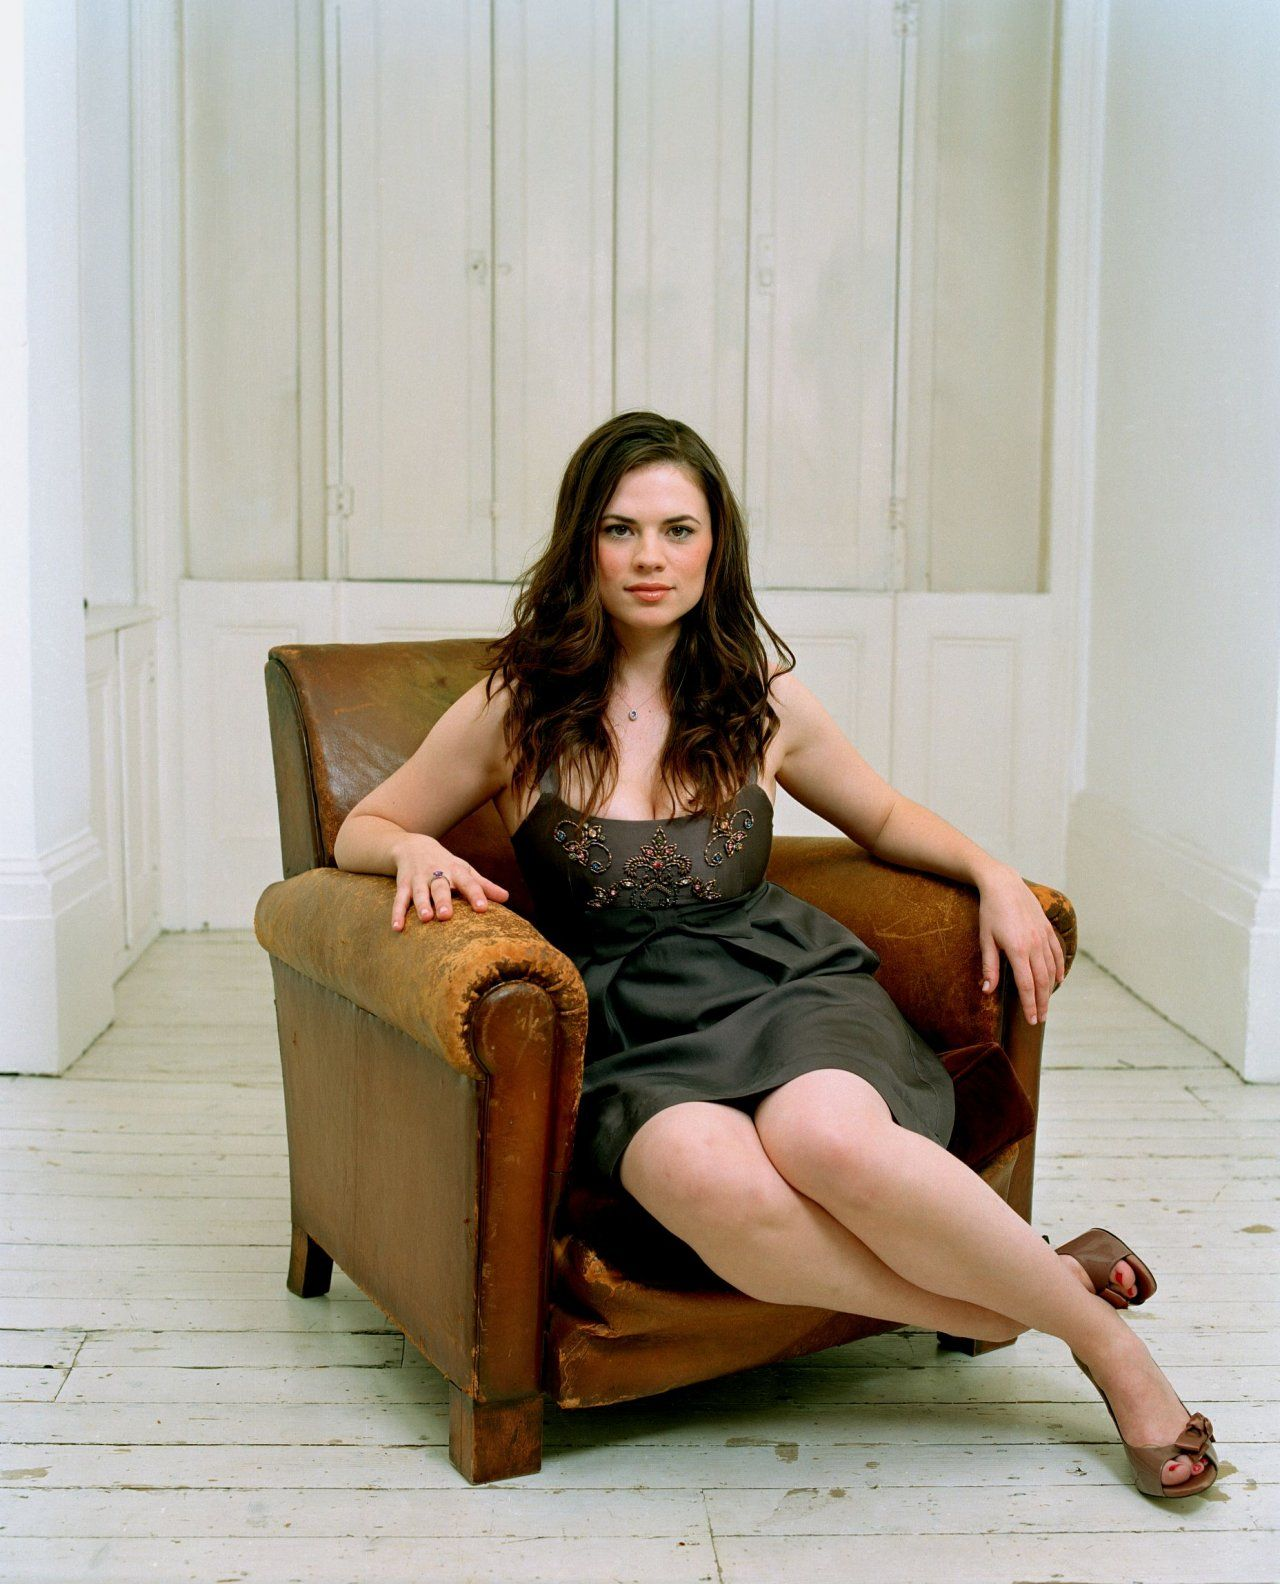 Hayley Elizabeth Atwell is a top beautiful British-American actress